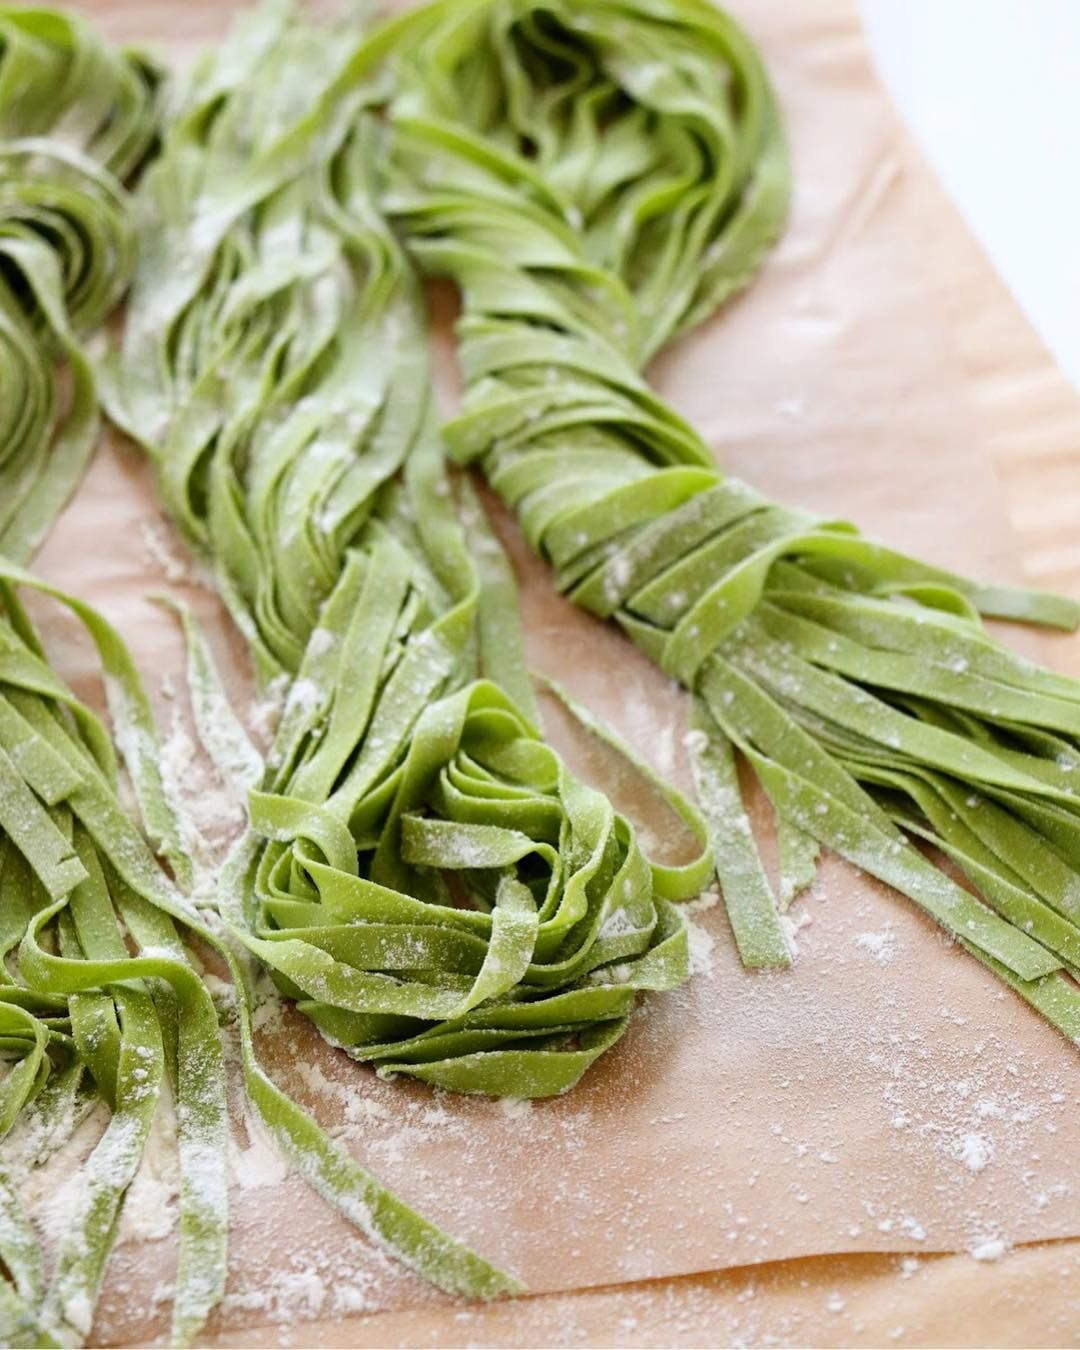 Homemade Pasta Dash Of Savory Cook With Passion Recipe Homemade Spinach Pasta Homemade Pasta Recipe Spinach Pasta Recipes